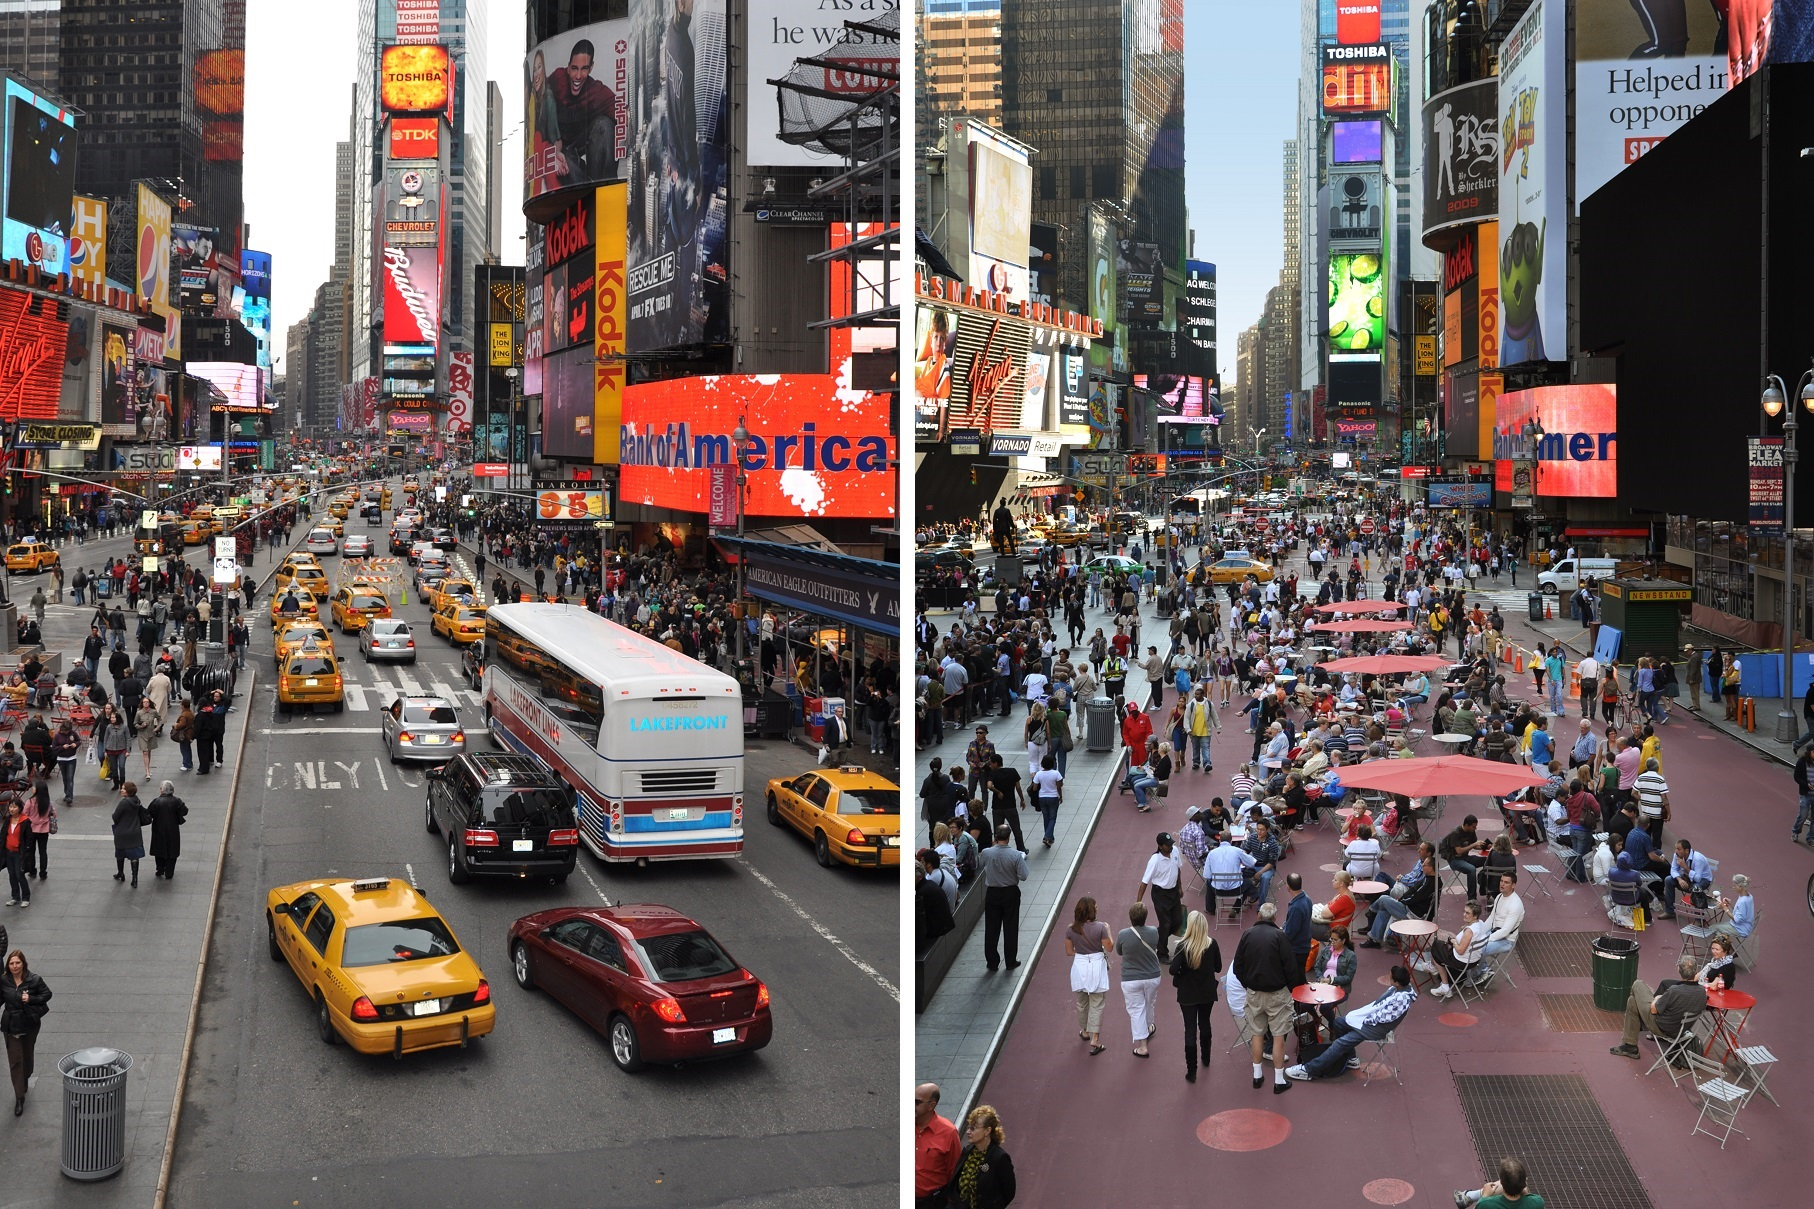 Left: Photo by Heidi Wolf/NYC DOT, right: Photo by Julio Palleiro/NYC DOT